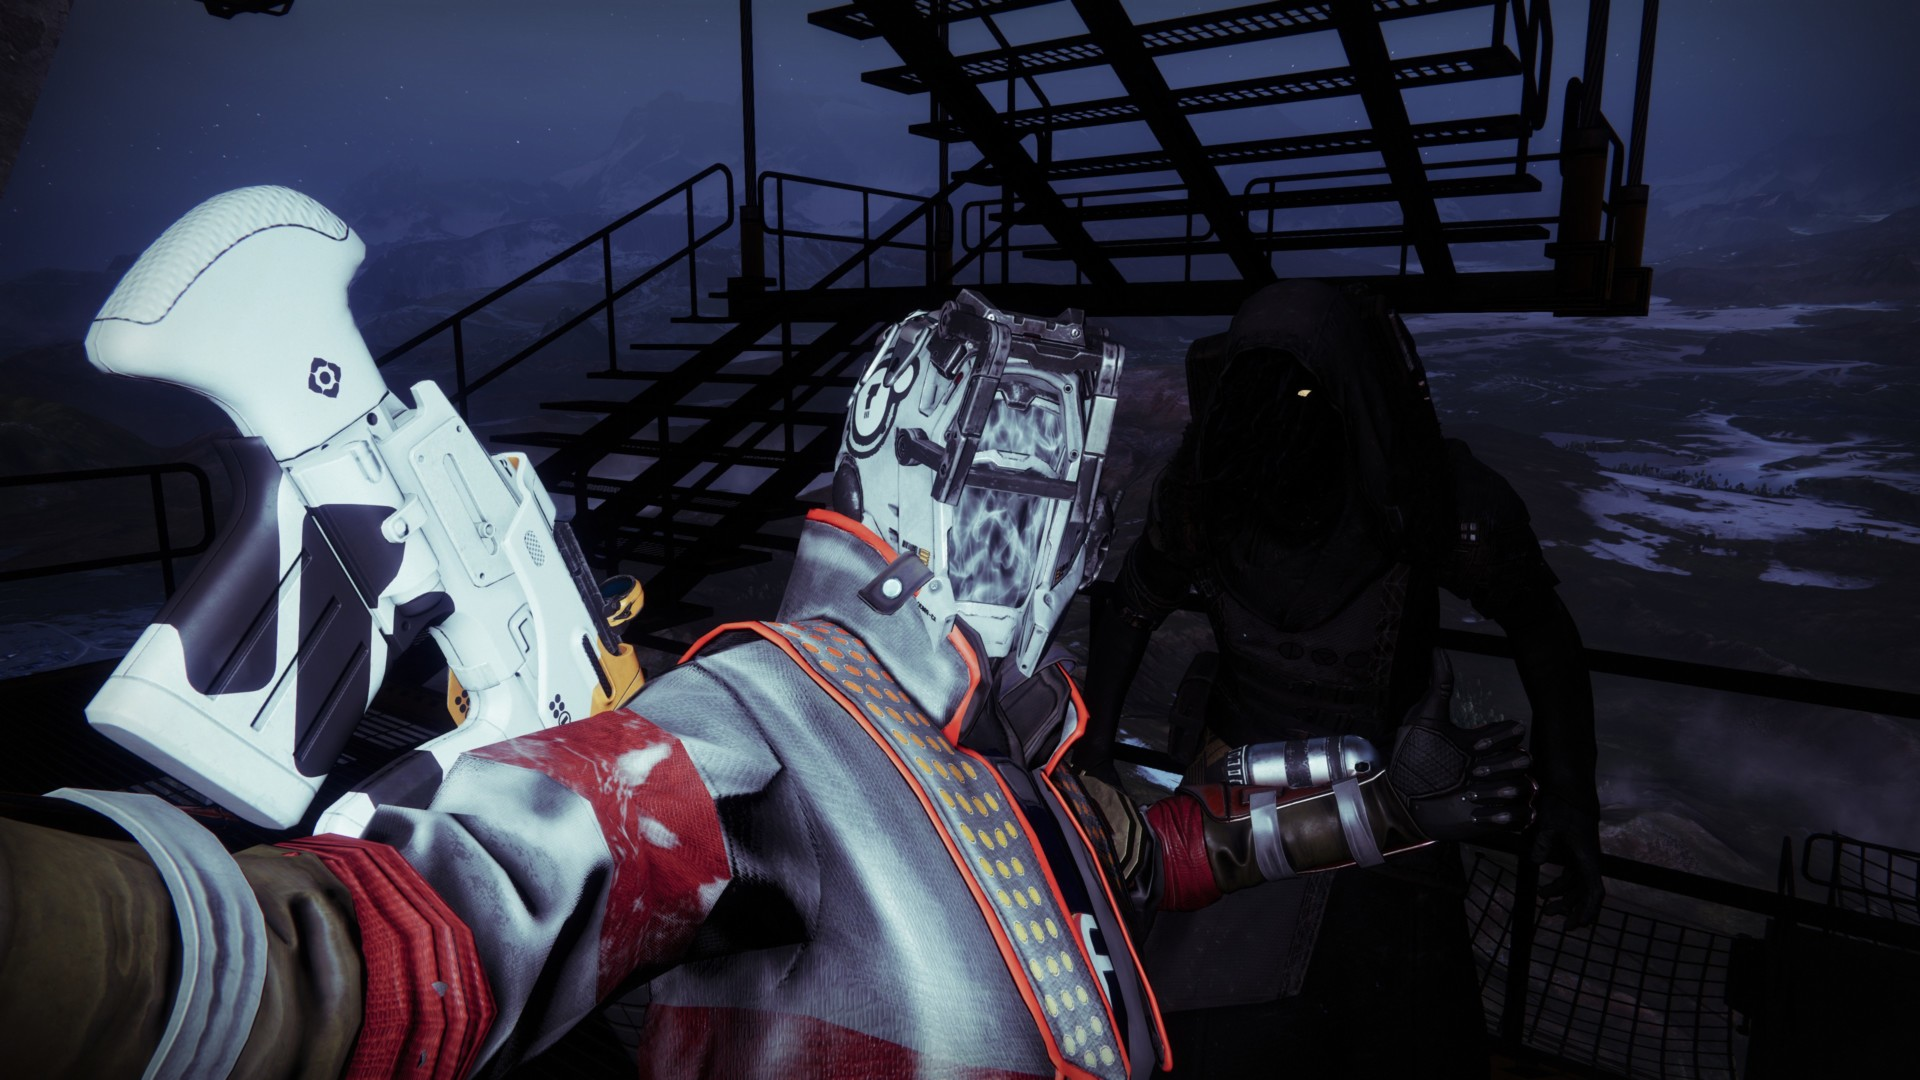 Destiny 2: Beyond Light — Xur's location and items for November 13, 2020